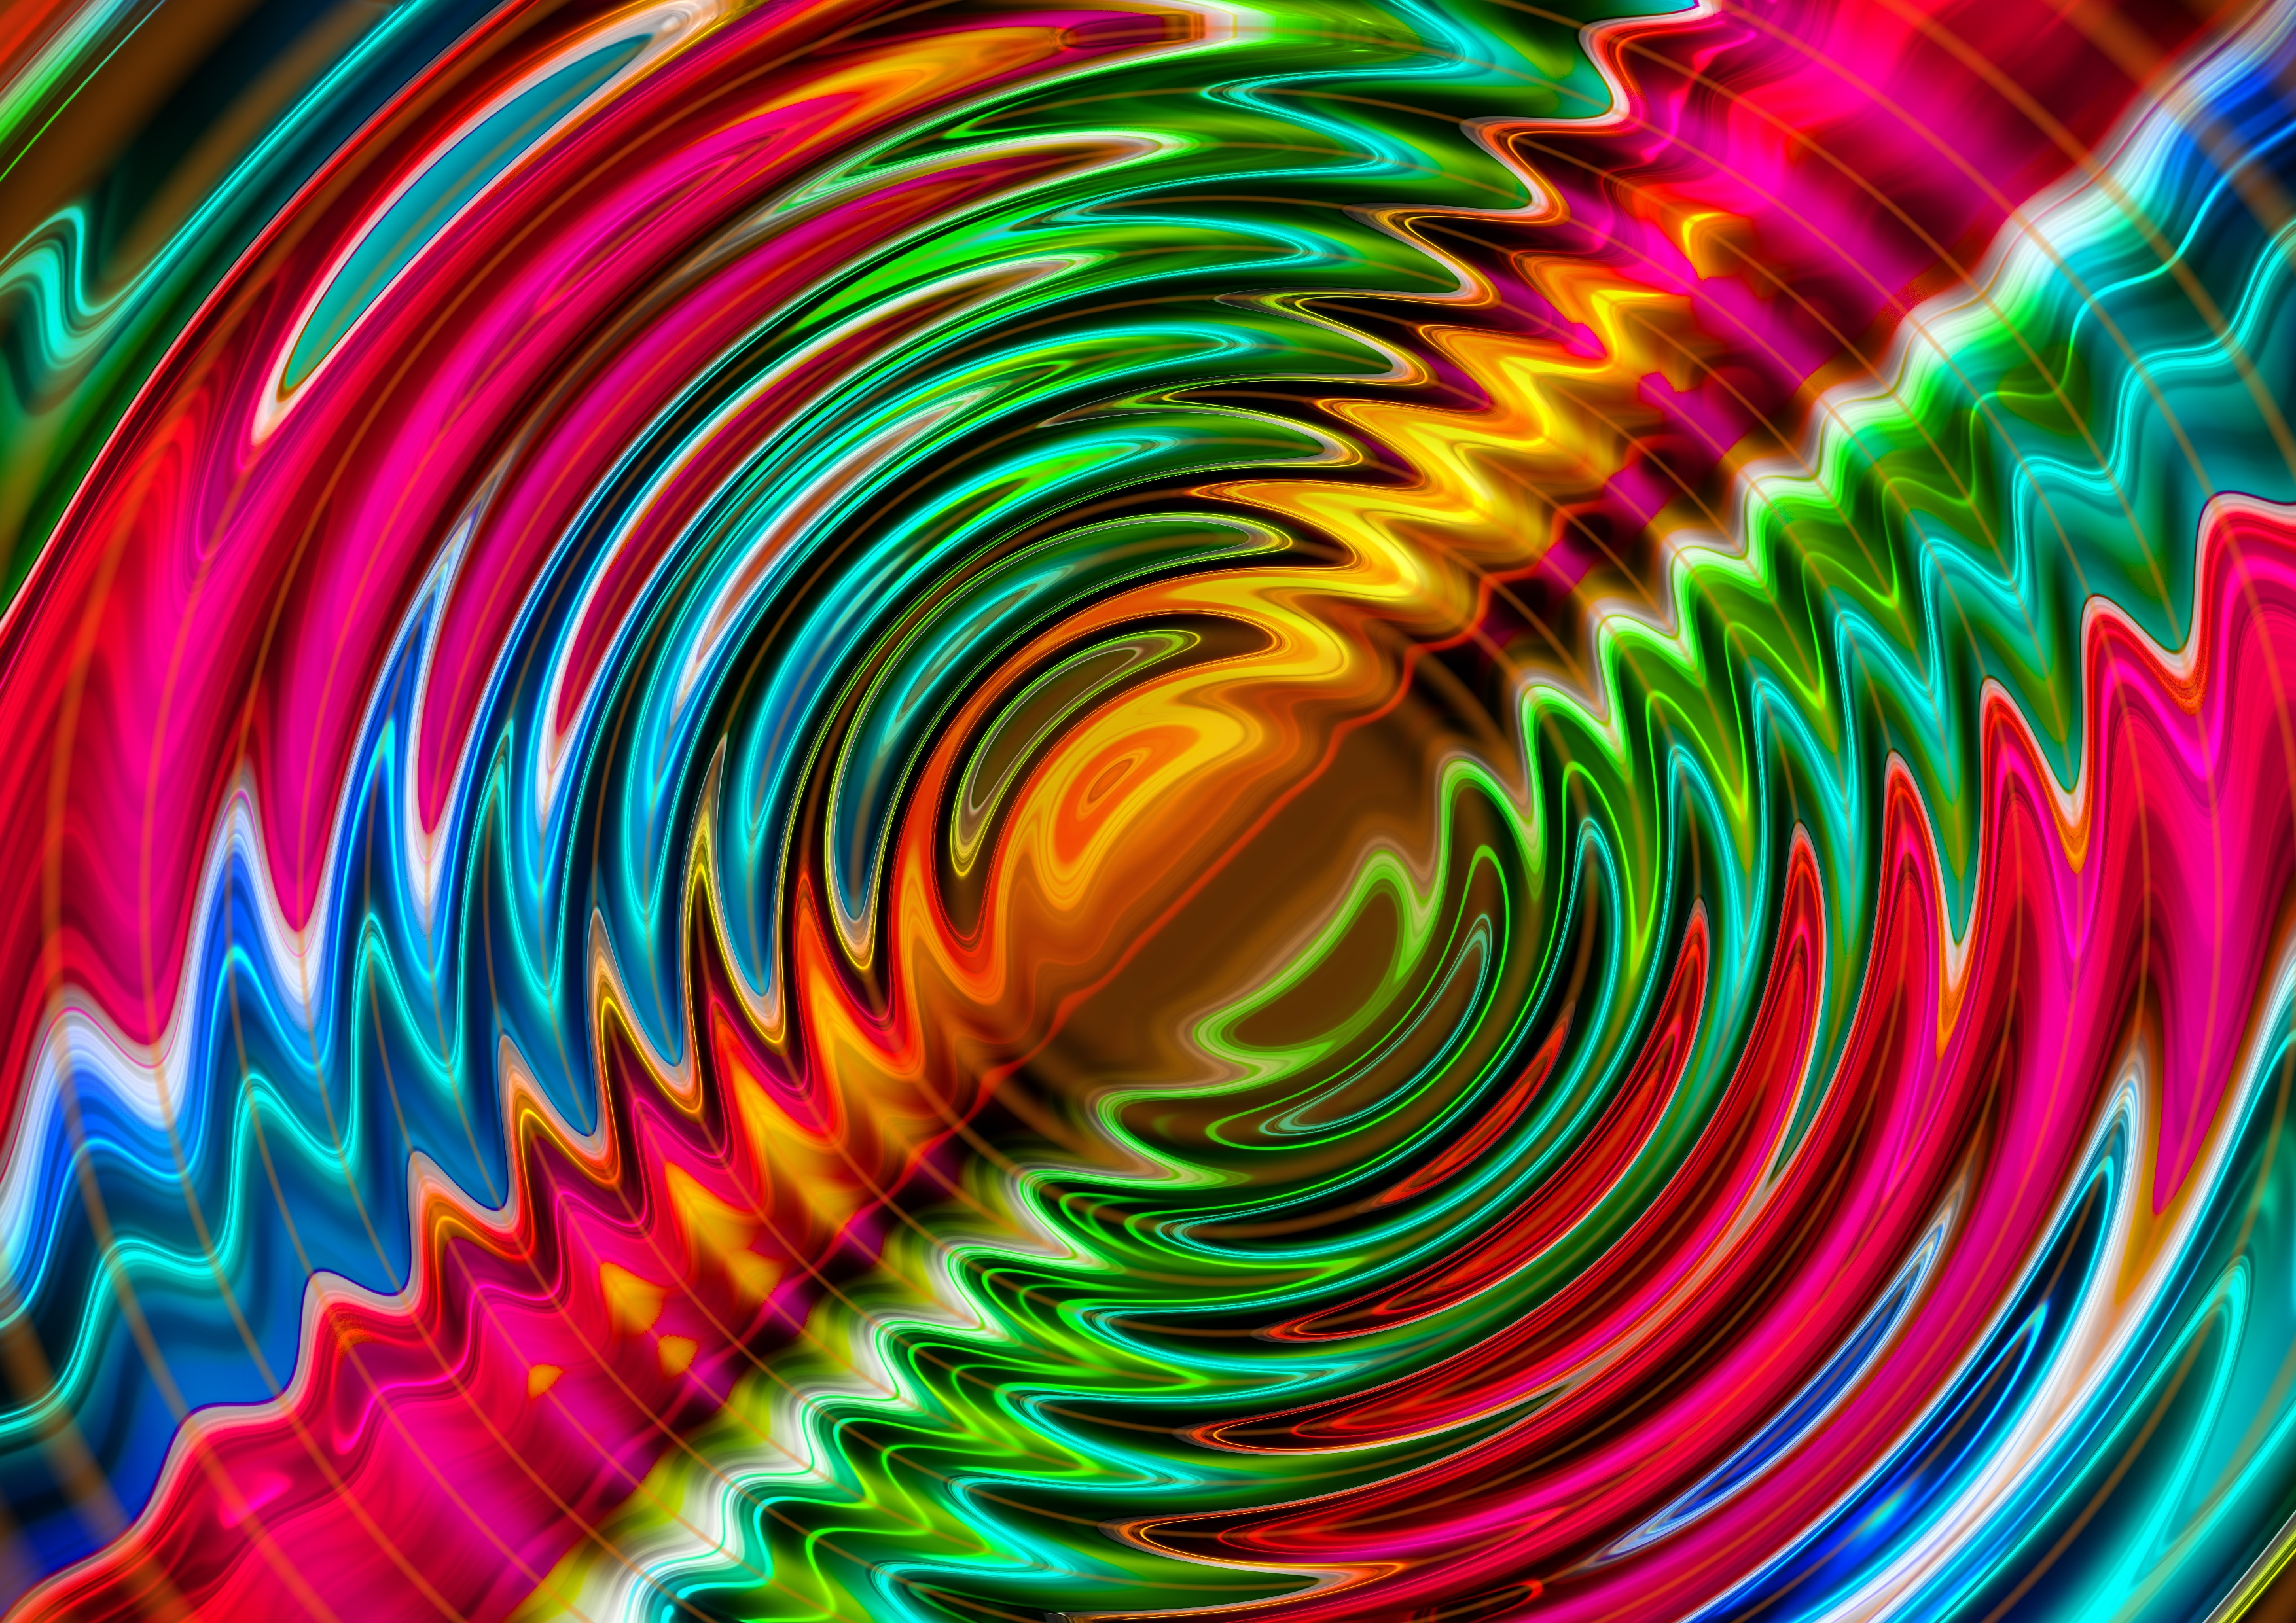 Iridescent Wallpaper Wallpaper With Iridescent Circles Free Image